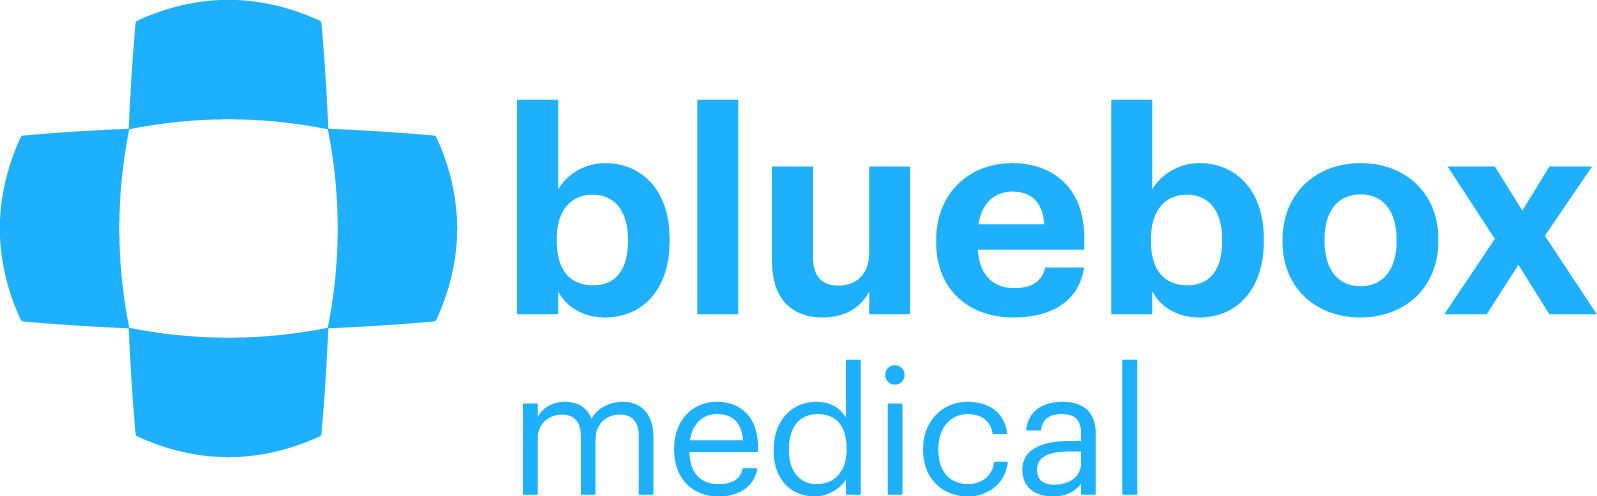 Blue-box-medical-logo-1.png